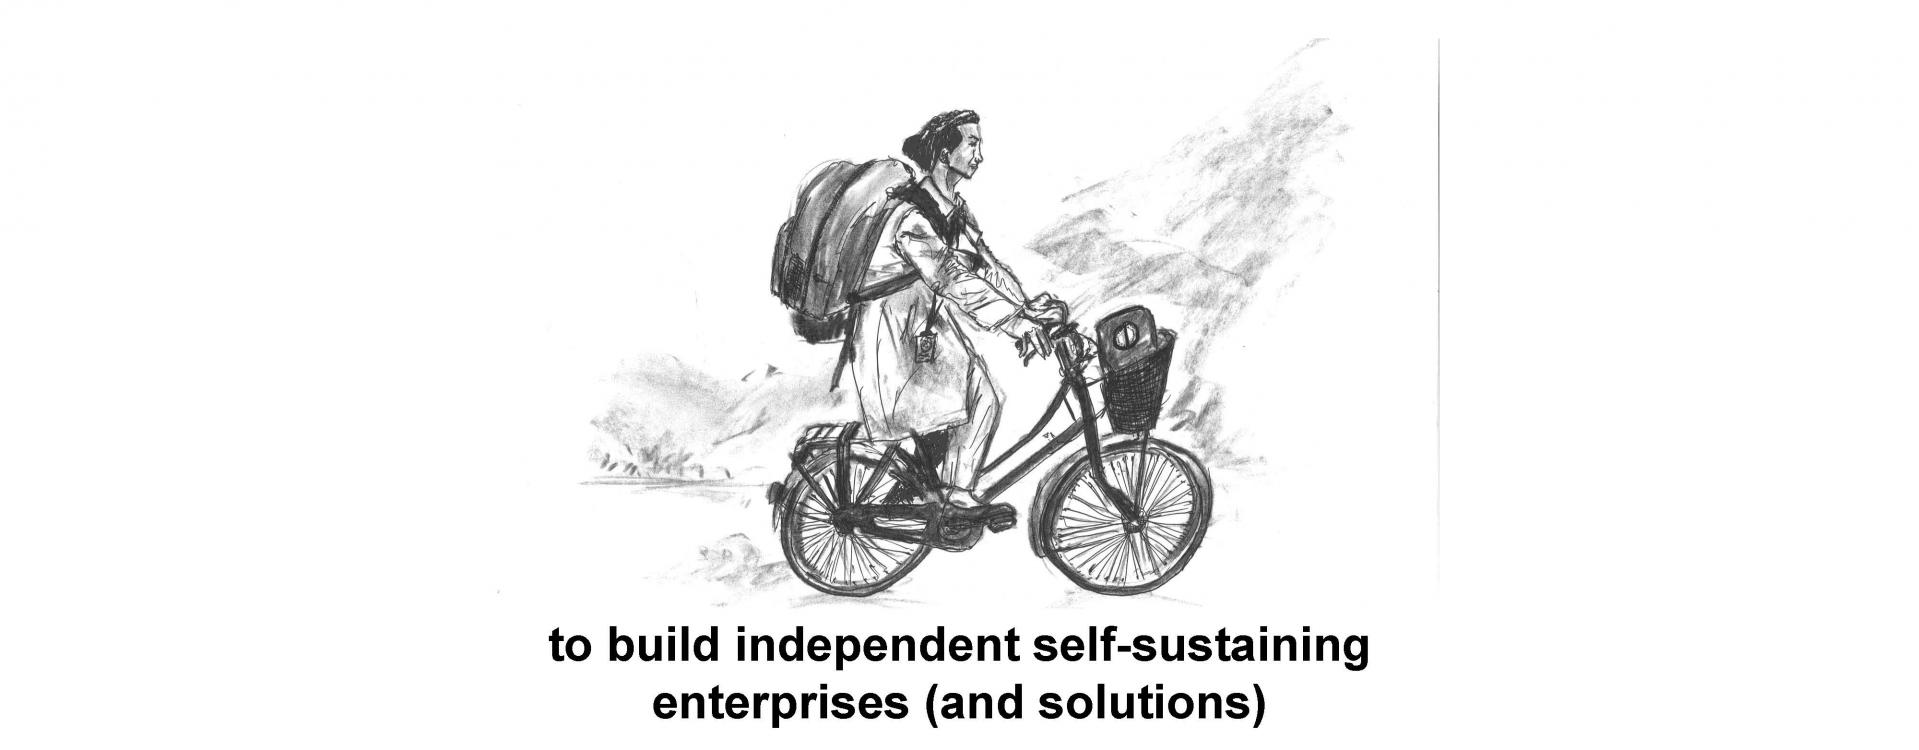 to build independent self-sustaining enterprises and solutions